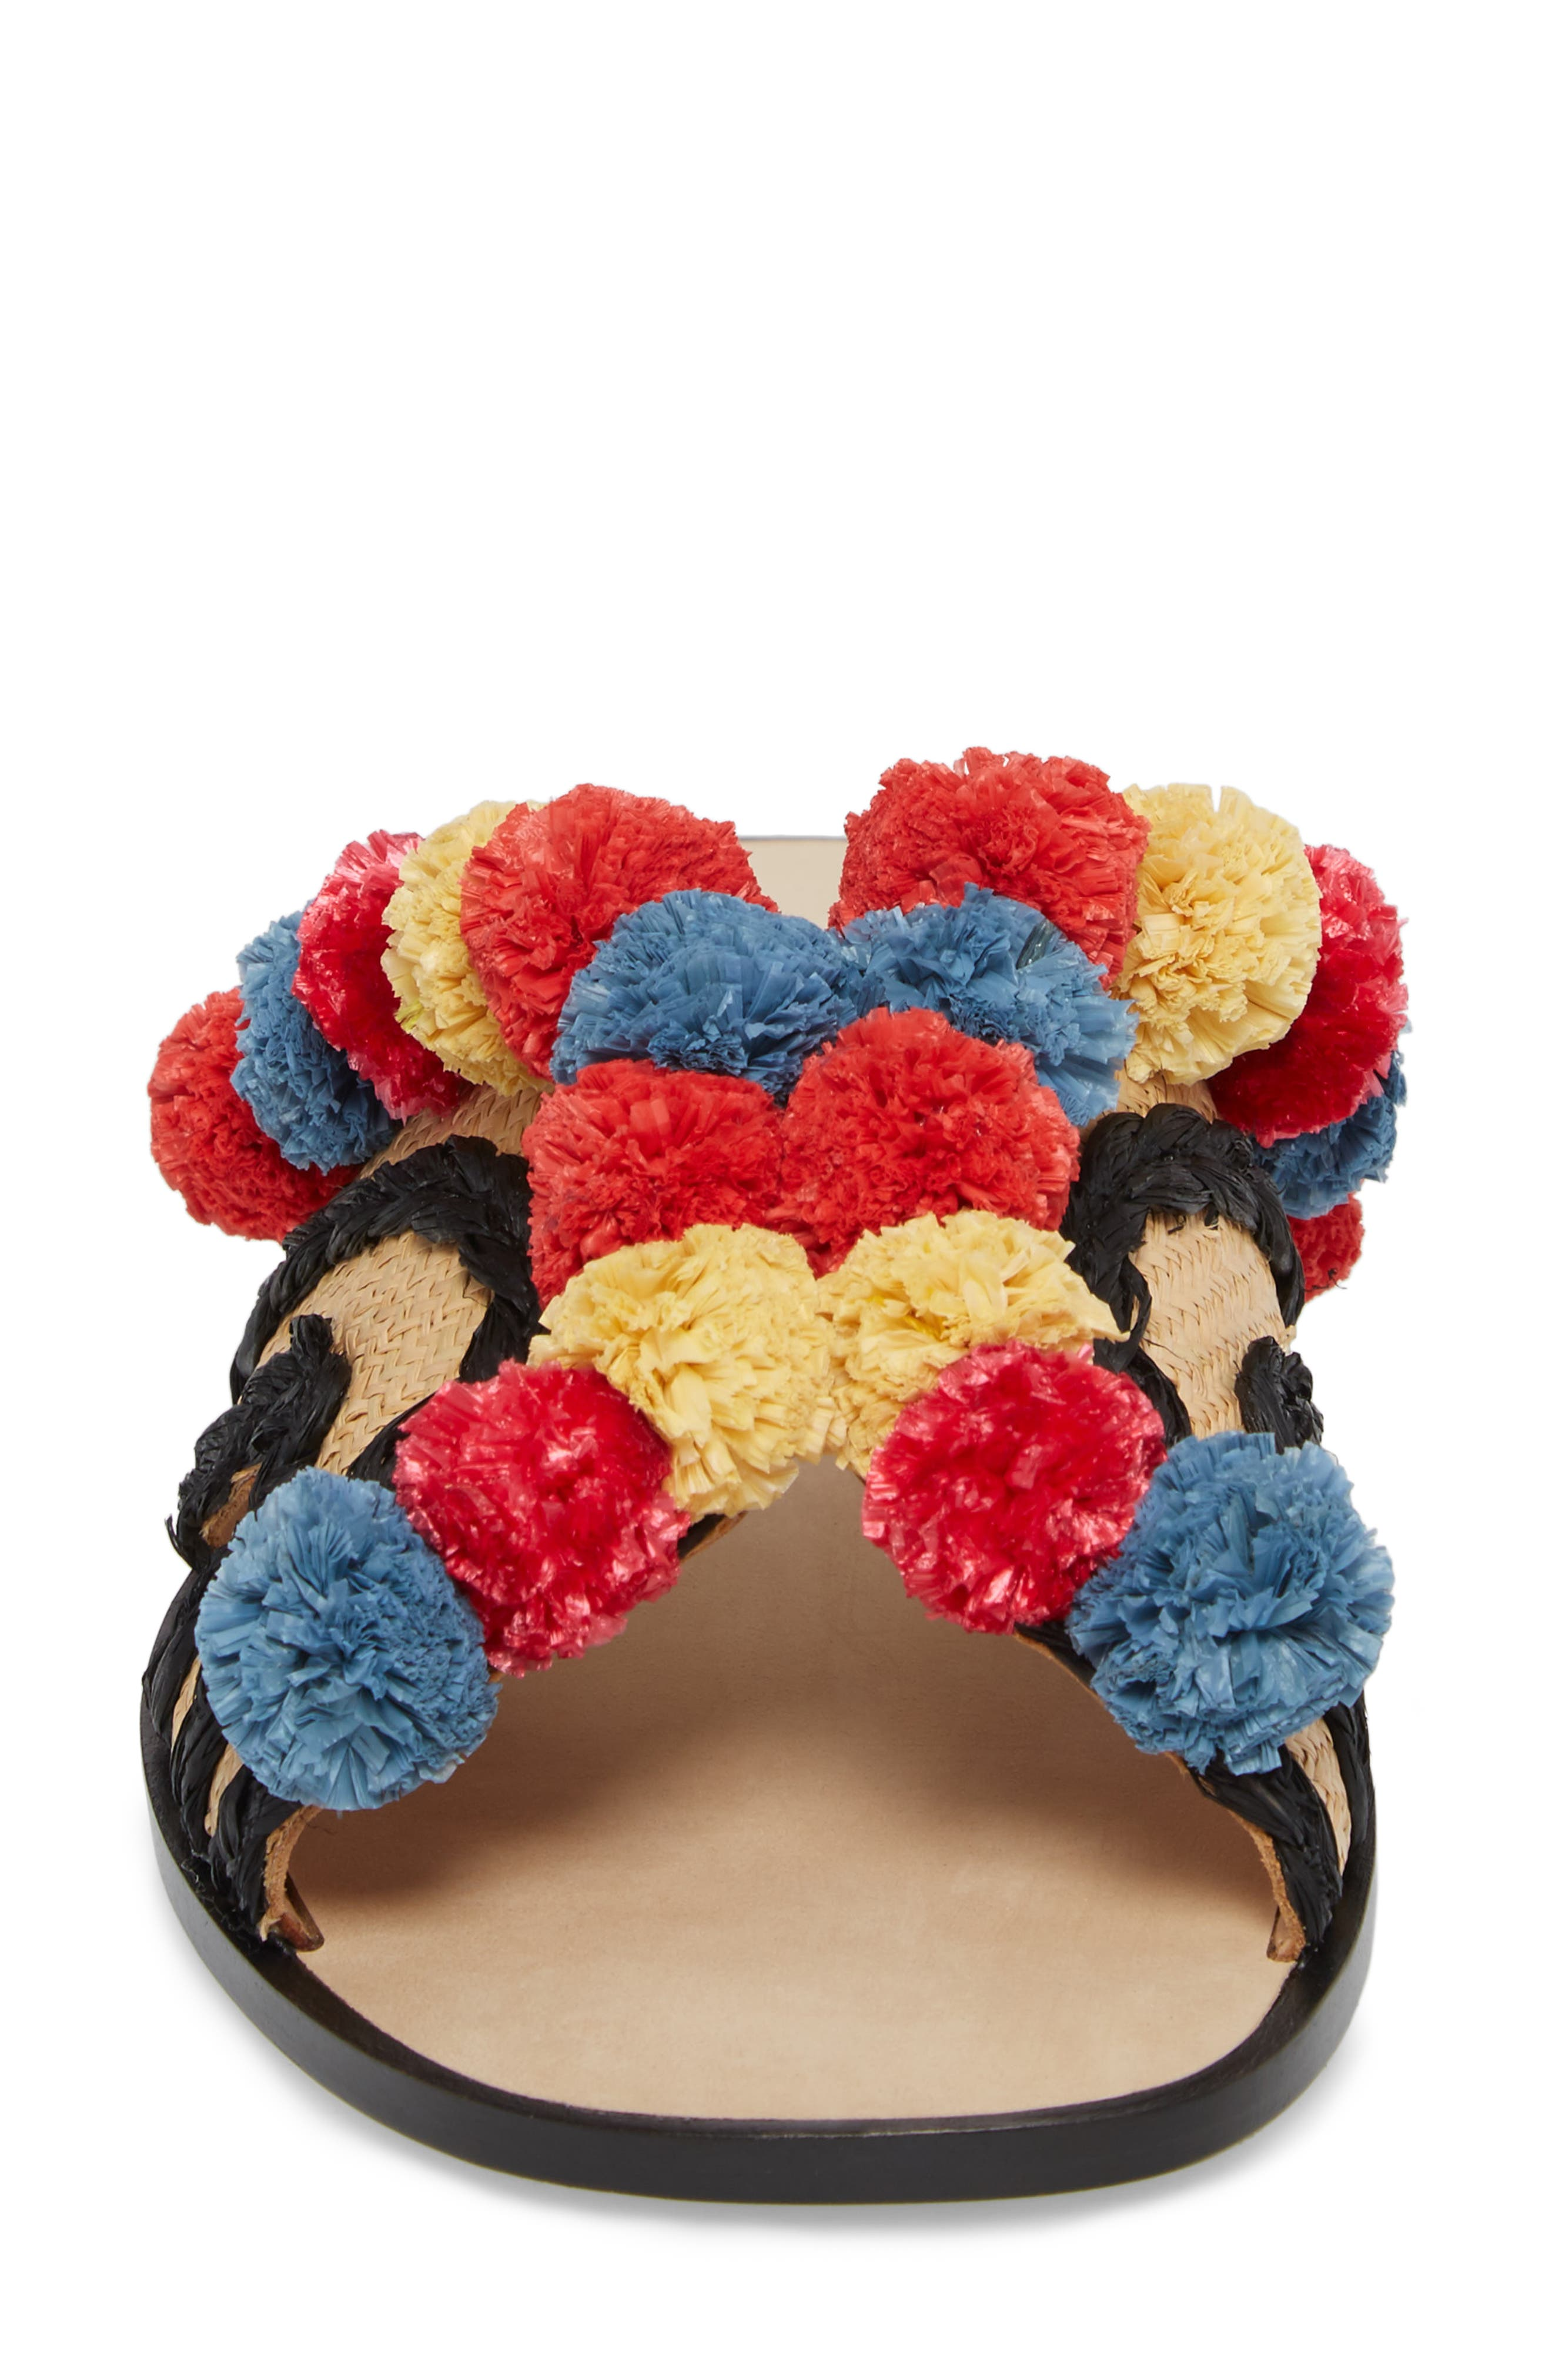 Paden Pompom Slide Sandals,                             Alternate thumbnail 4, color,                             002